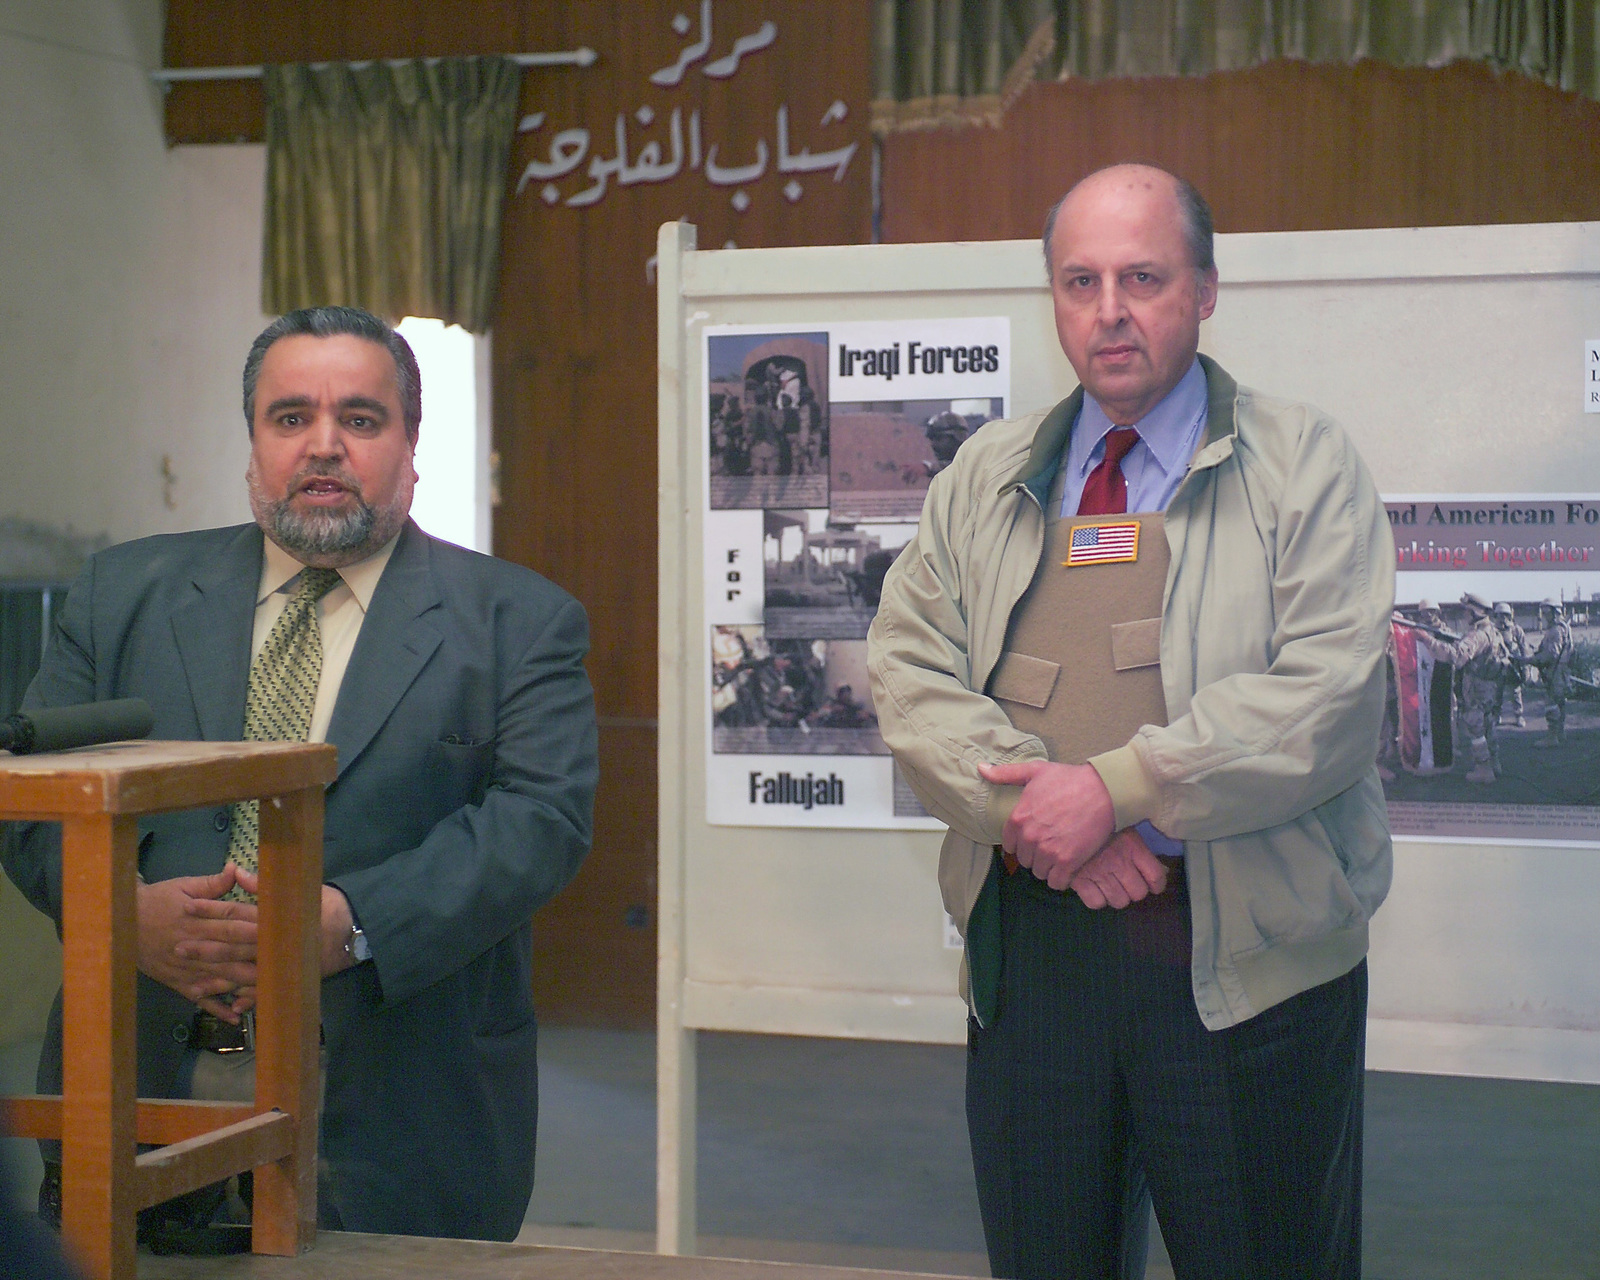 The Honorable John D. Negroponte (right), U.S. Ambassador to Iraq, listens as the Honorable Dr. Hajim al-Hasani (left), Minister, Iraqi Ministry of Industry and Minerals (MIM), speaks at a press conference while visiting the U.S. e Corps 4th Civil Affairs Group Civil Military Operations Center, in the city of Fallujah, Al Anbar Province, Iraq, on Nov. 27, 2004. Dr. al-Hasani, Ambassador Negroponte, and the Honorable William B. Taylor, Jr., Director, Iraq Reconstruction Management Office, are touring the city of Fallujah to assess the damage at the end of the week-long battle by Multinational Forces against insurgents in the city of Fallujah, during Operation Iraqi Freedom. (U.S....